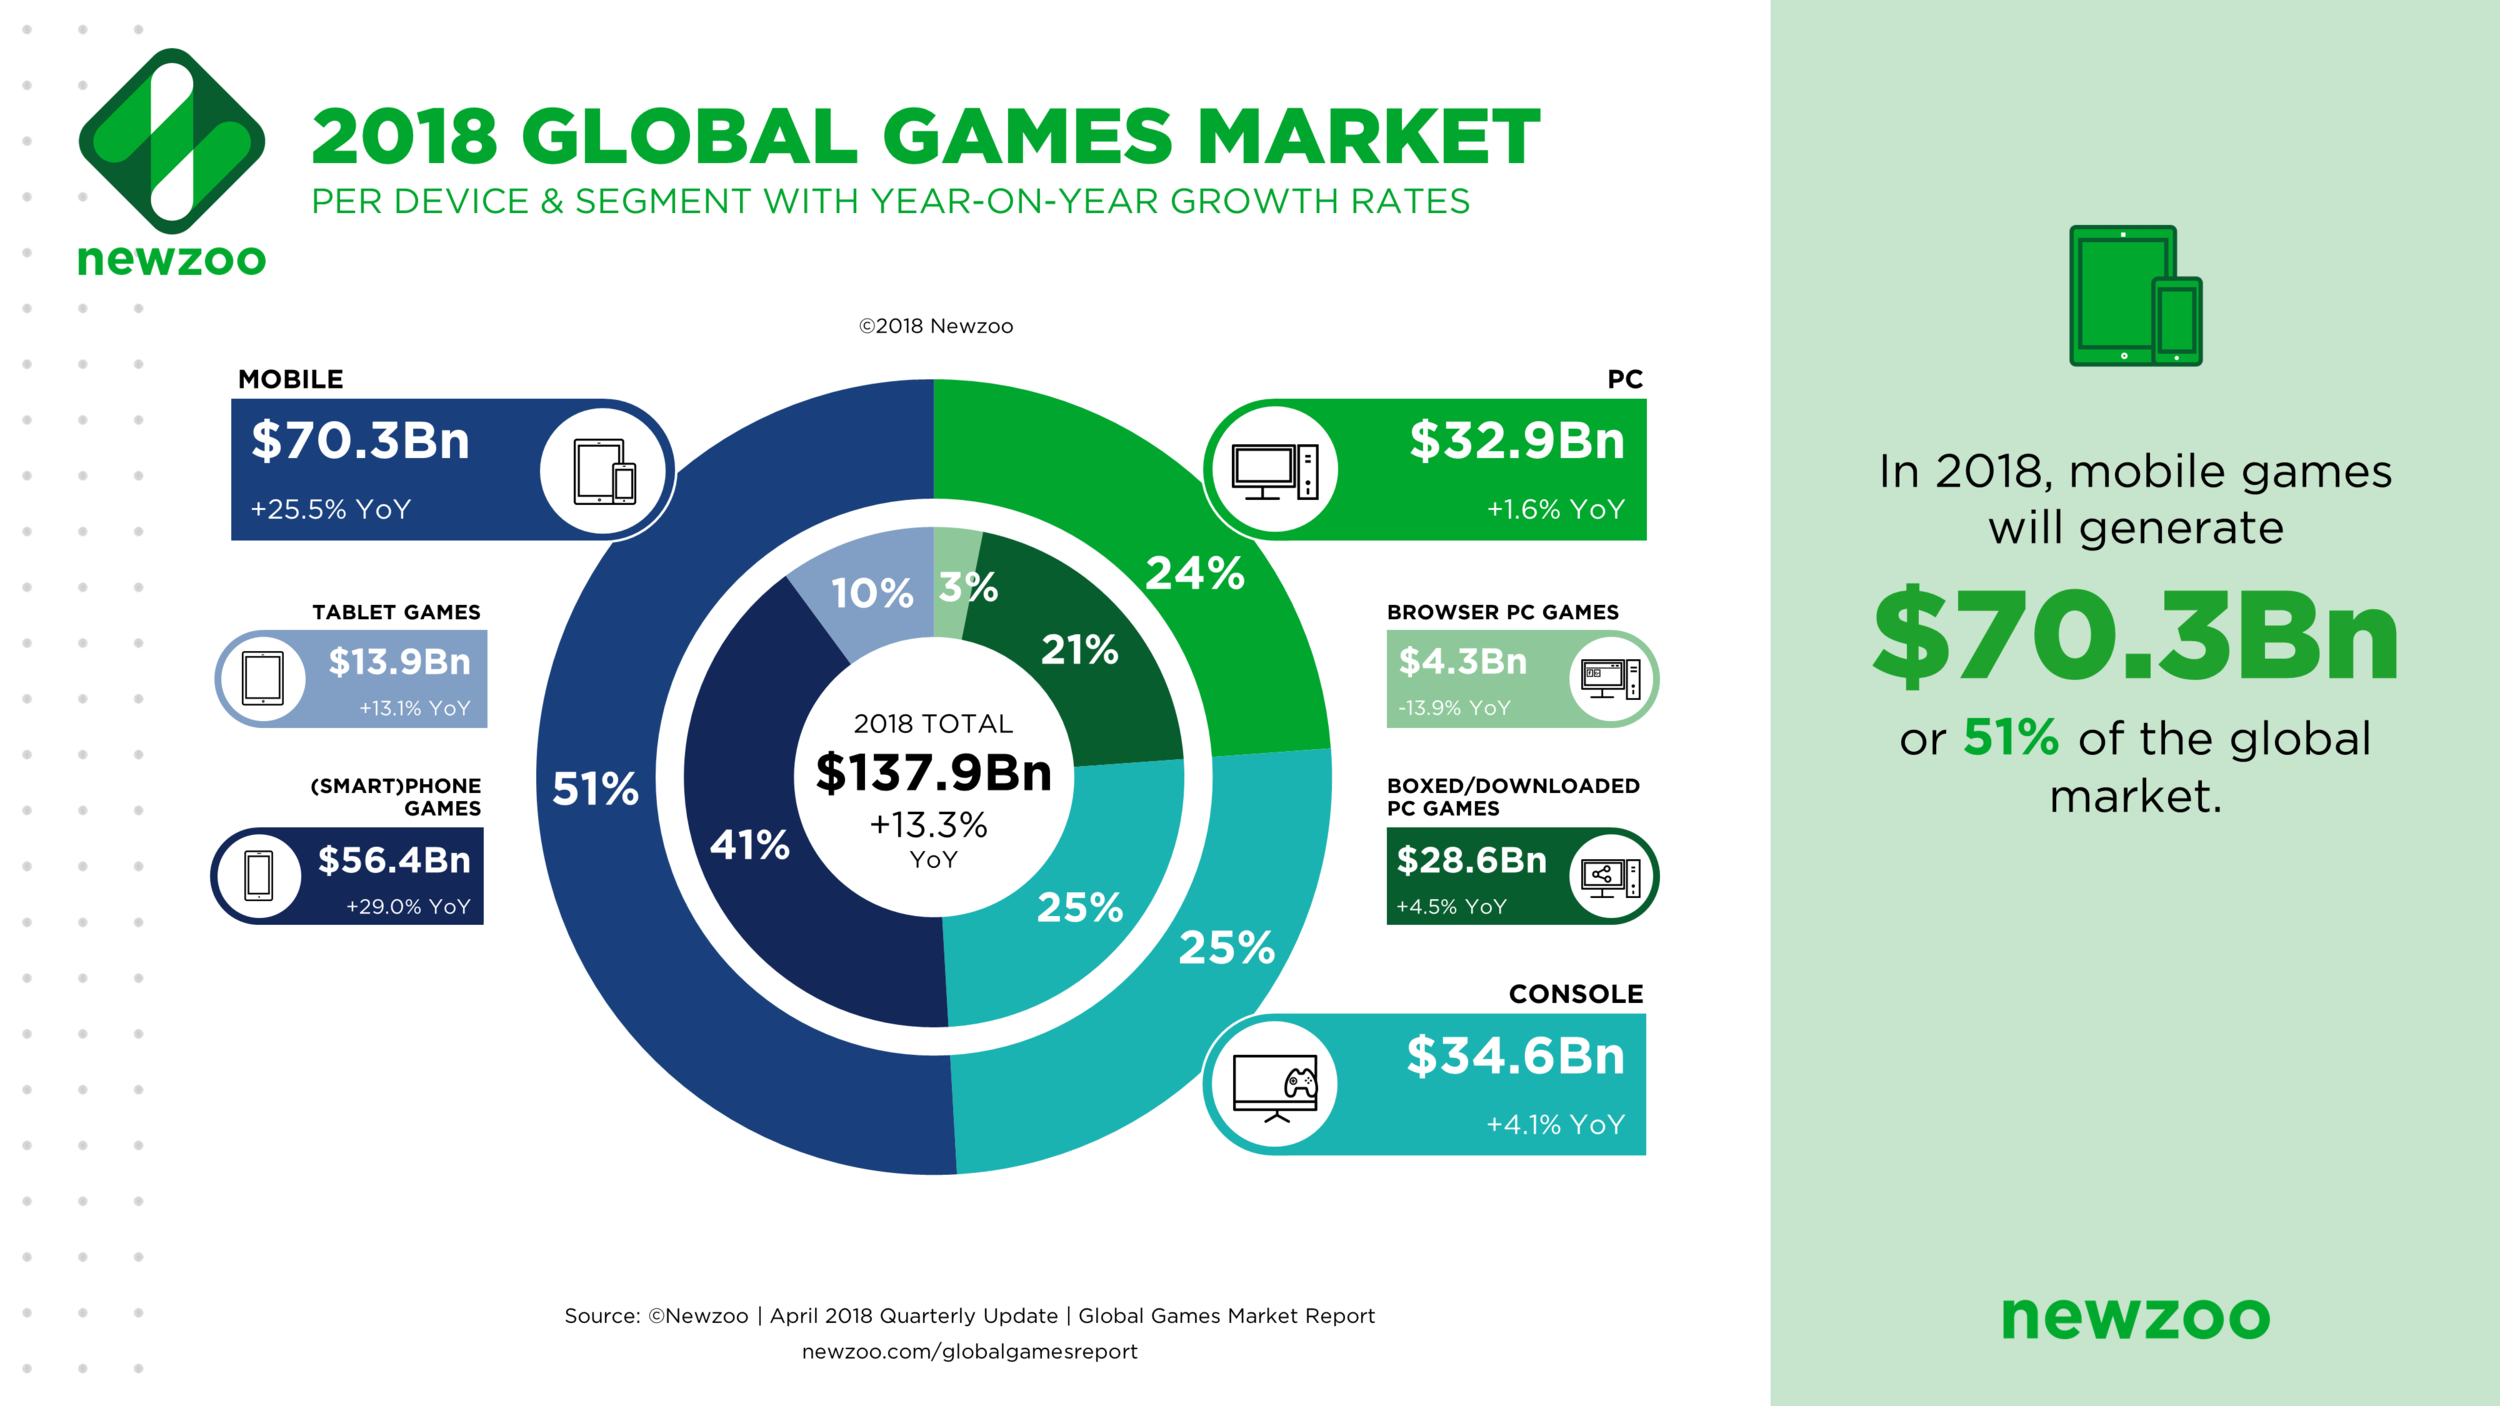 Global_Games_Market_2018.png